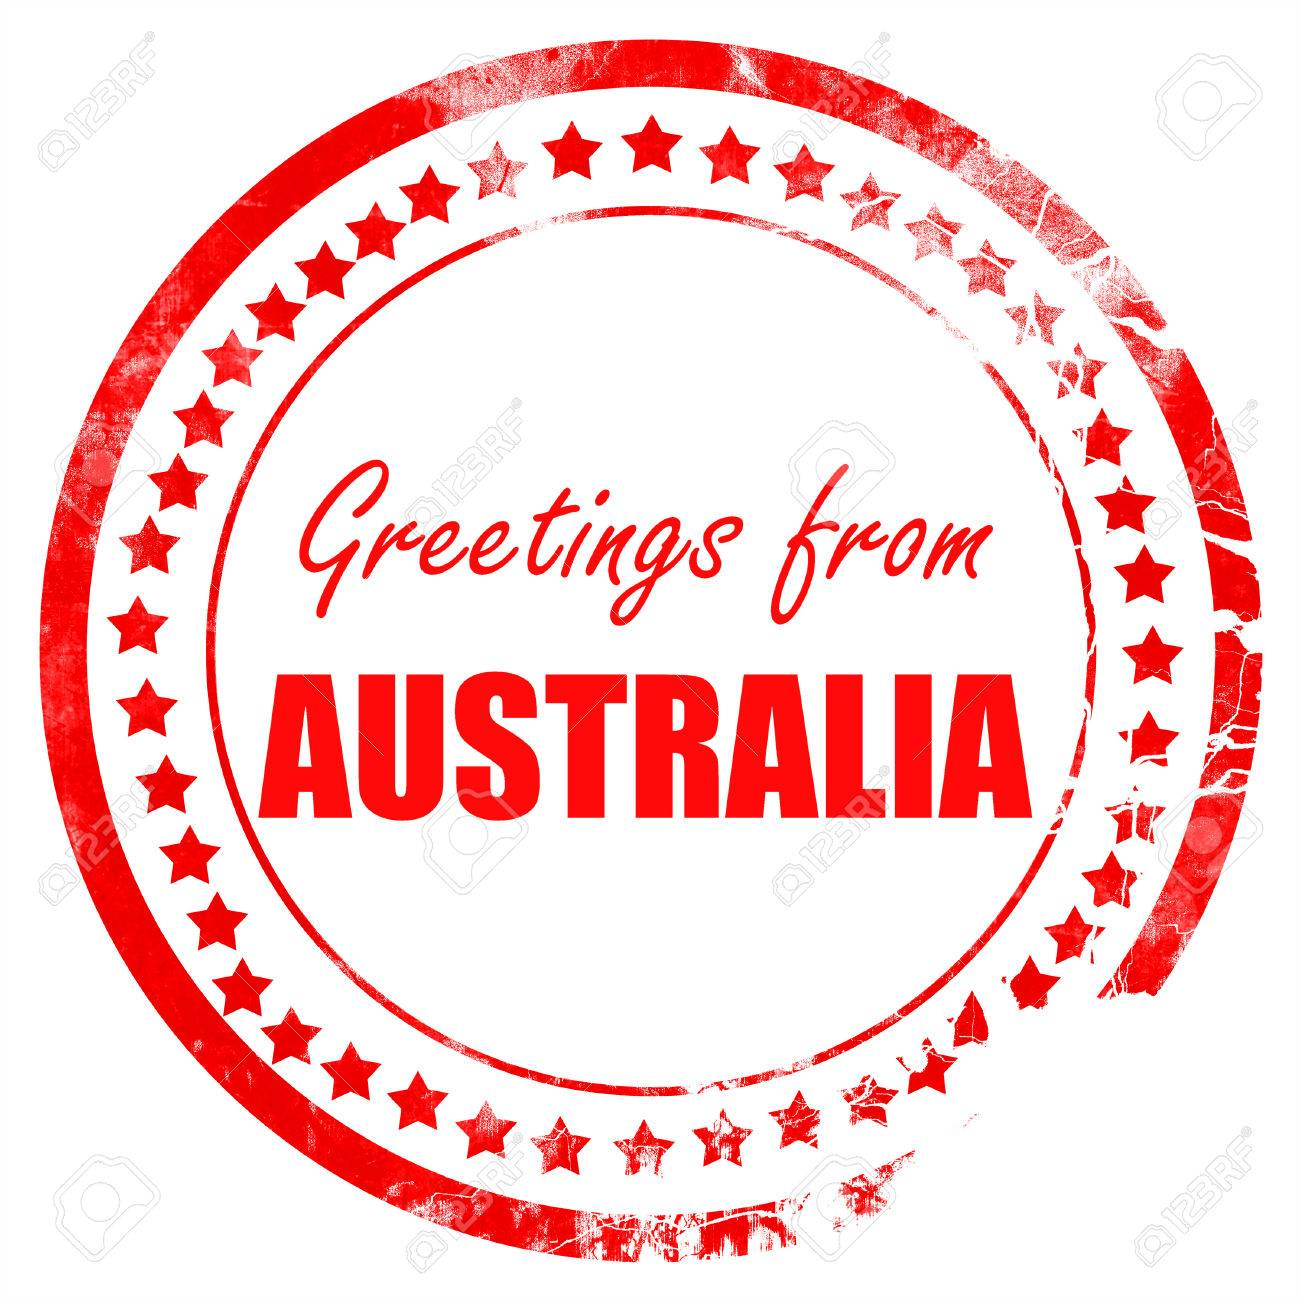 Greetings from australia card with some soft highlights stock photo greetings from australia card with some soft highlights stock photo 53784901 m4hsunfo